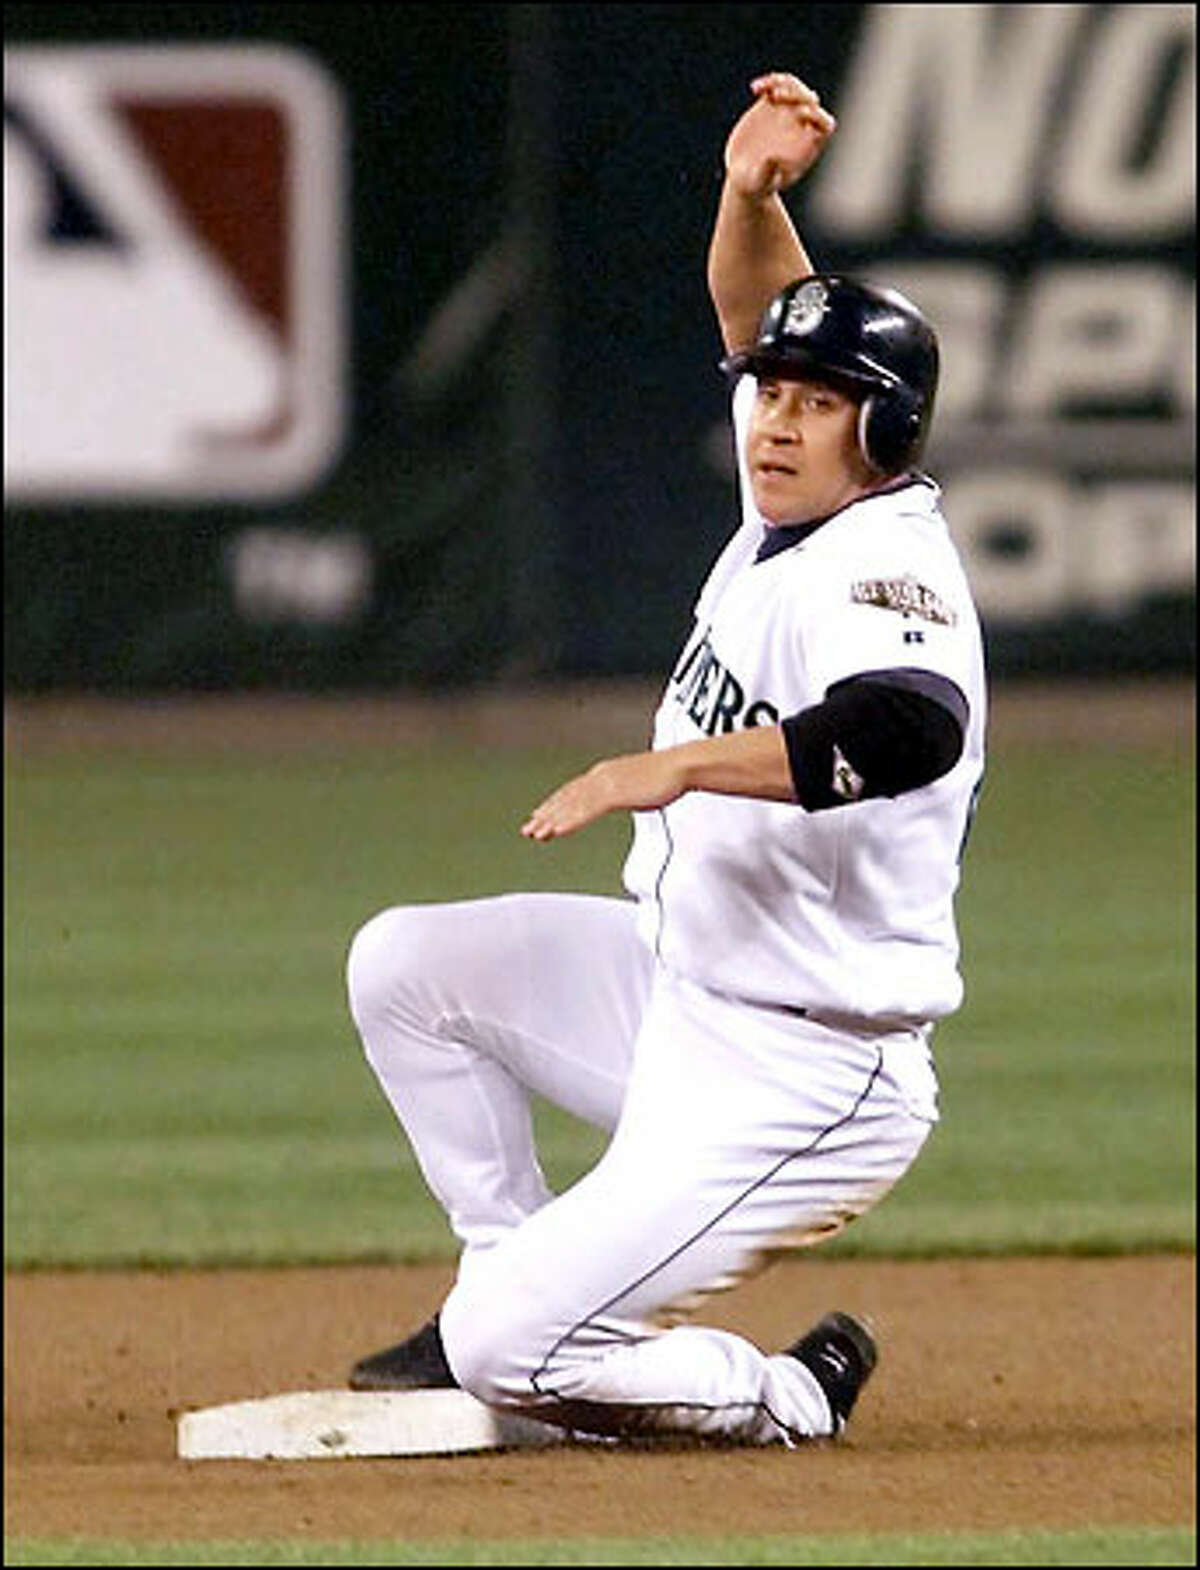 Bret Boone, running on a 3-2 pitch to Mike Cameron in the fourth inning, looks to see that ball four was called. Boone was in the lineup as the DH.